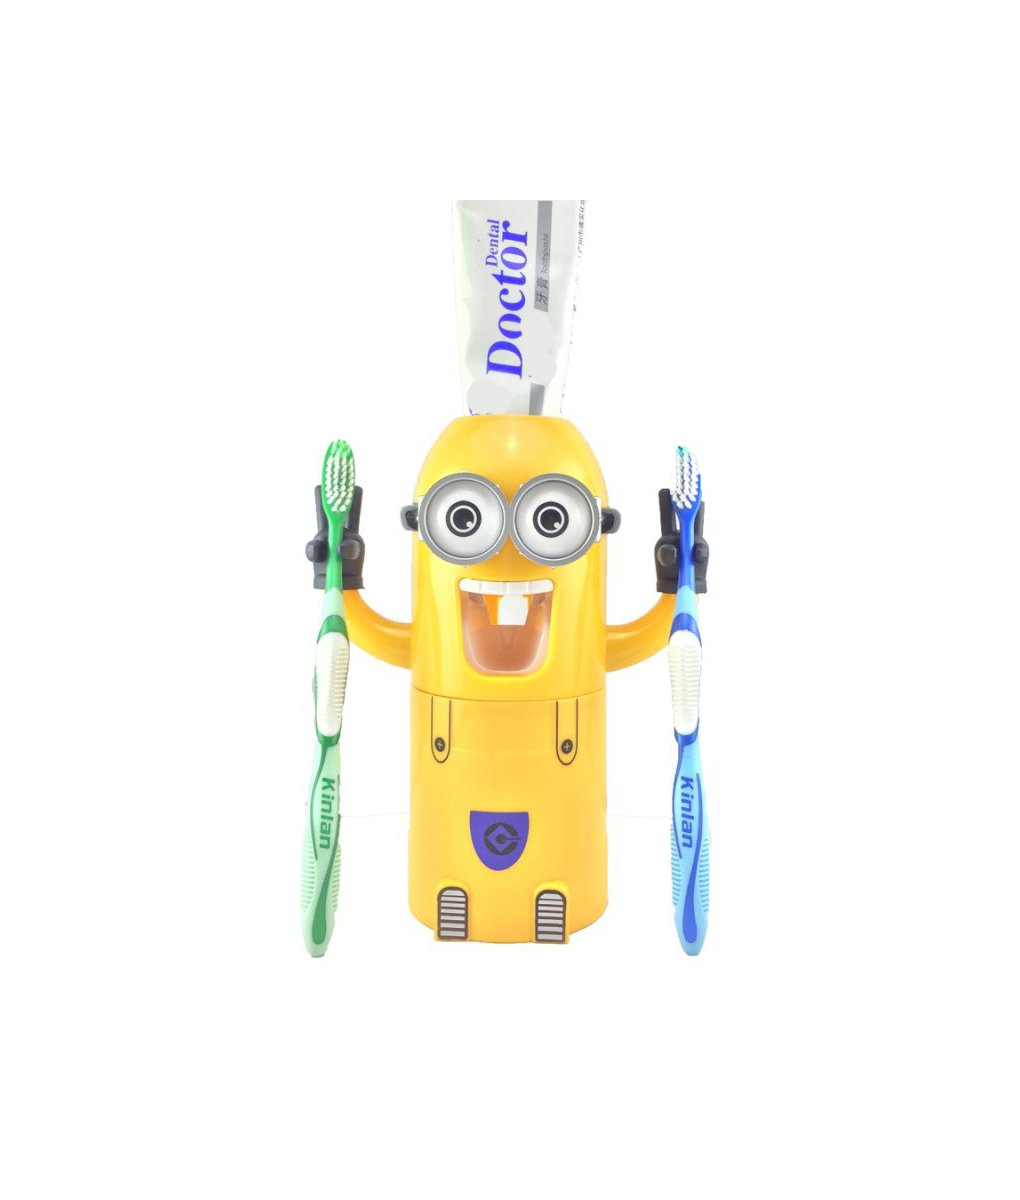 Minion Toothpaste Dispenser-Mexten Product is of high quality